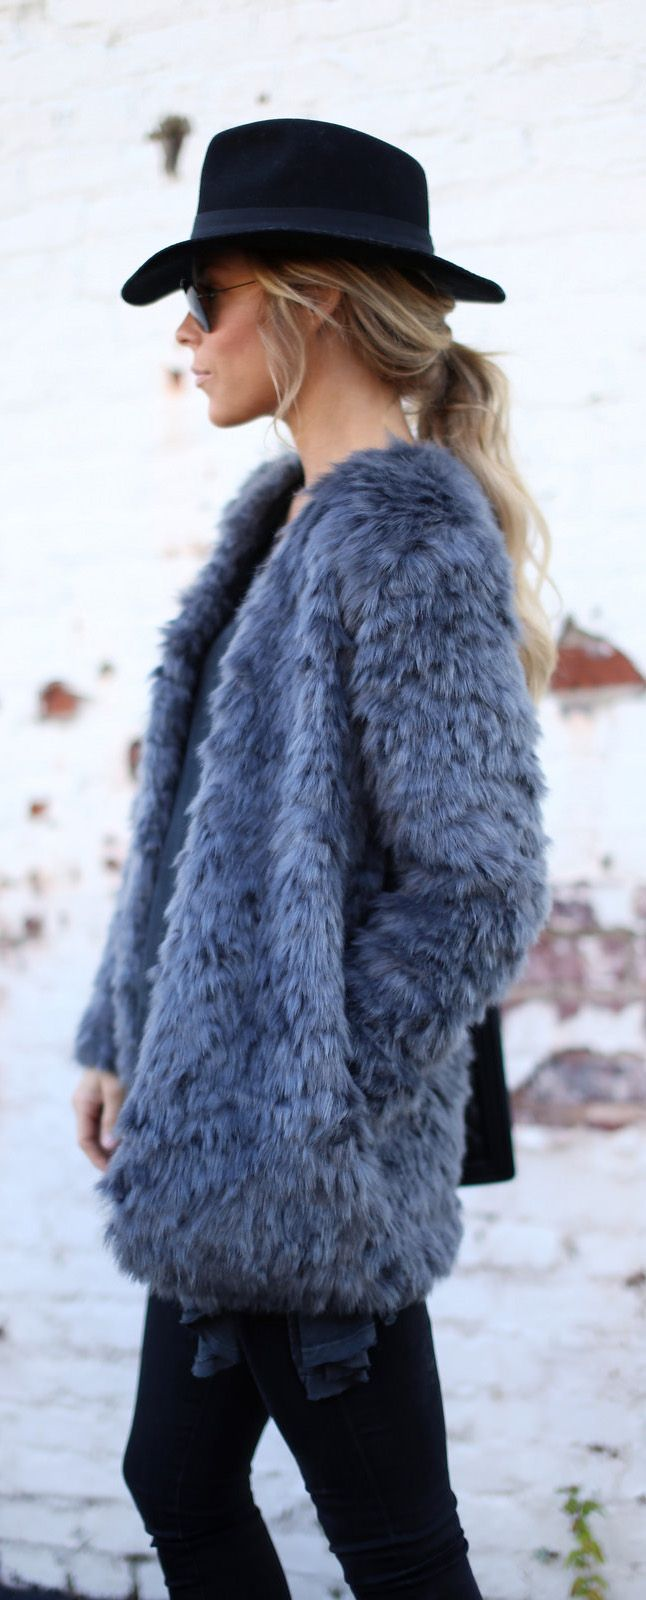 Mary Seng is wearing a faux fur fluffy grey coat for winter. This one is from Wayf